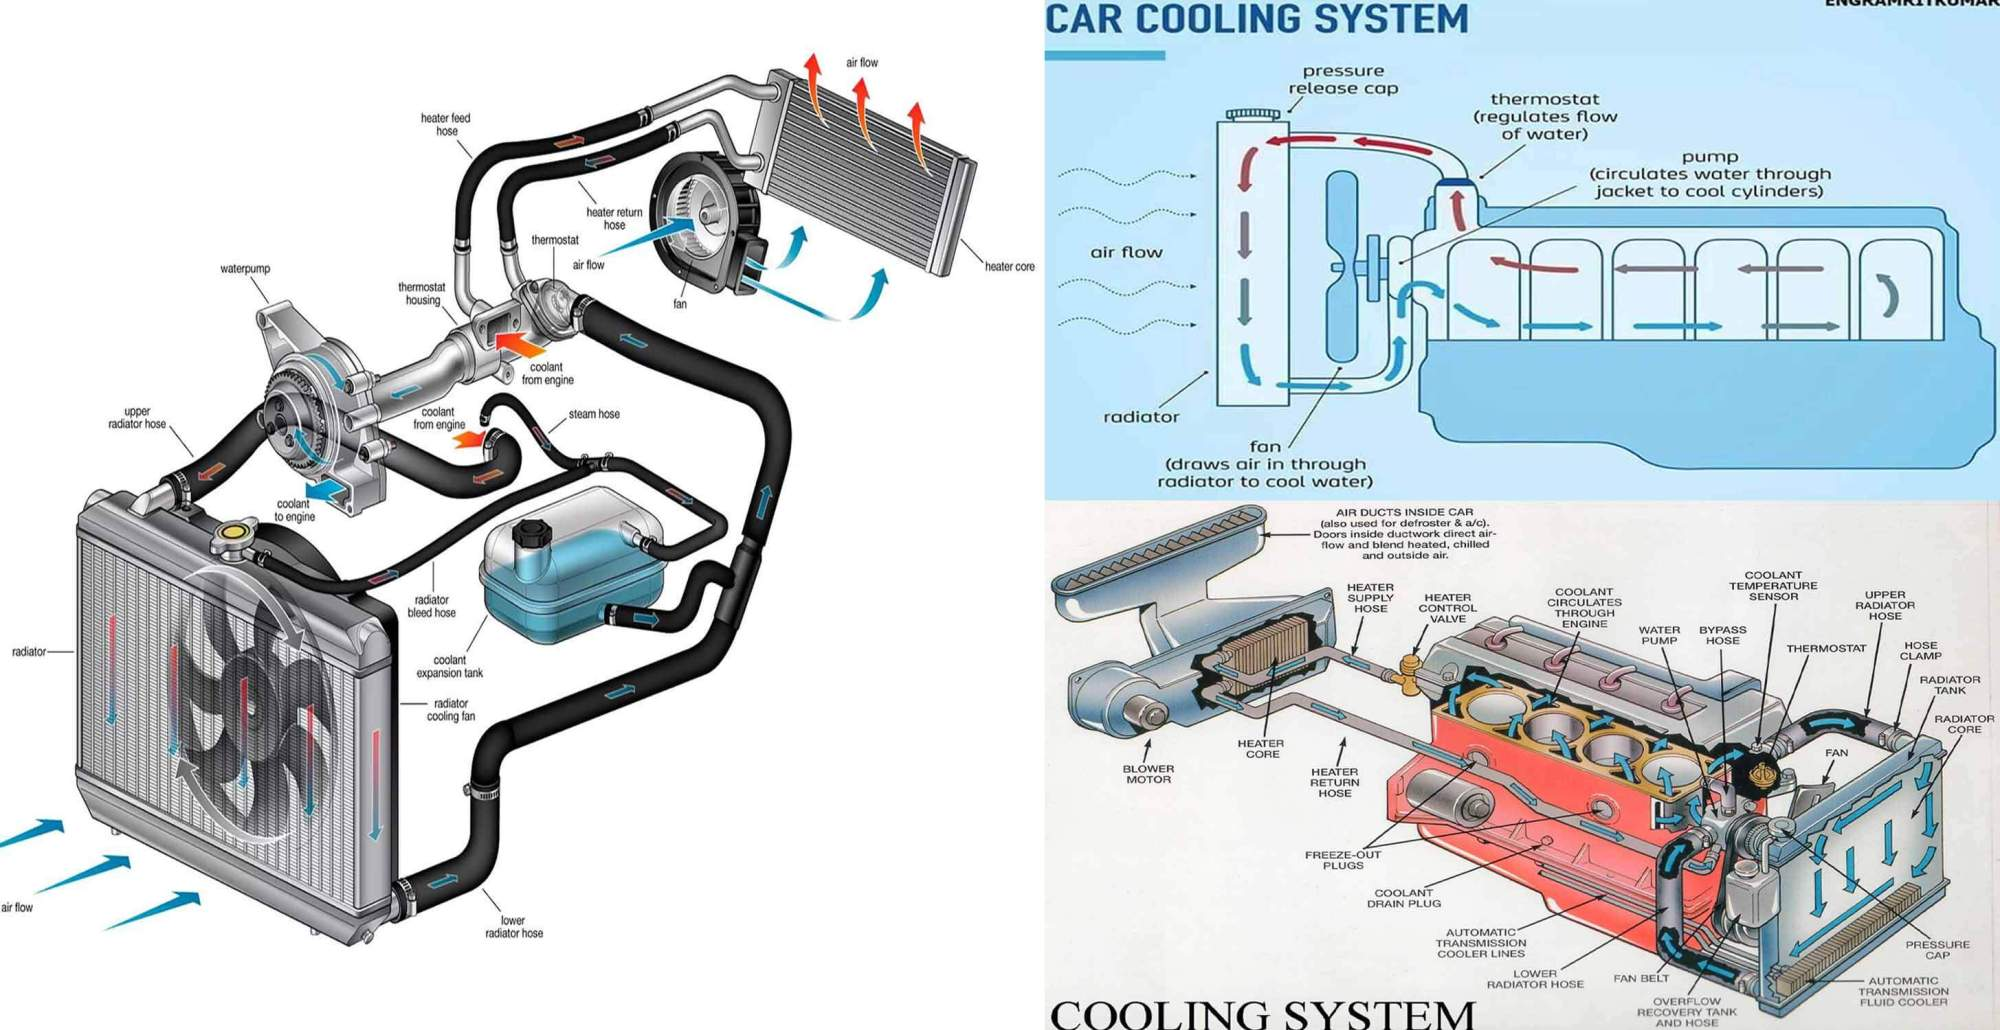 hight resolution of a car engine produces a lot of heat when it is running and must be cooled continuously to avoid engine damage generally this is done by circulating